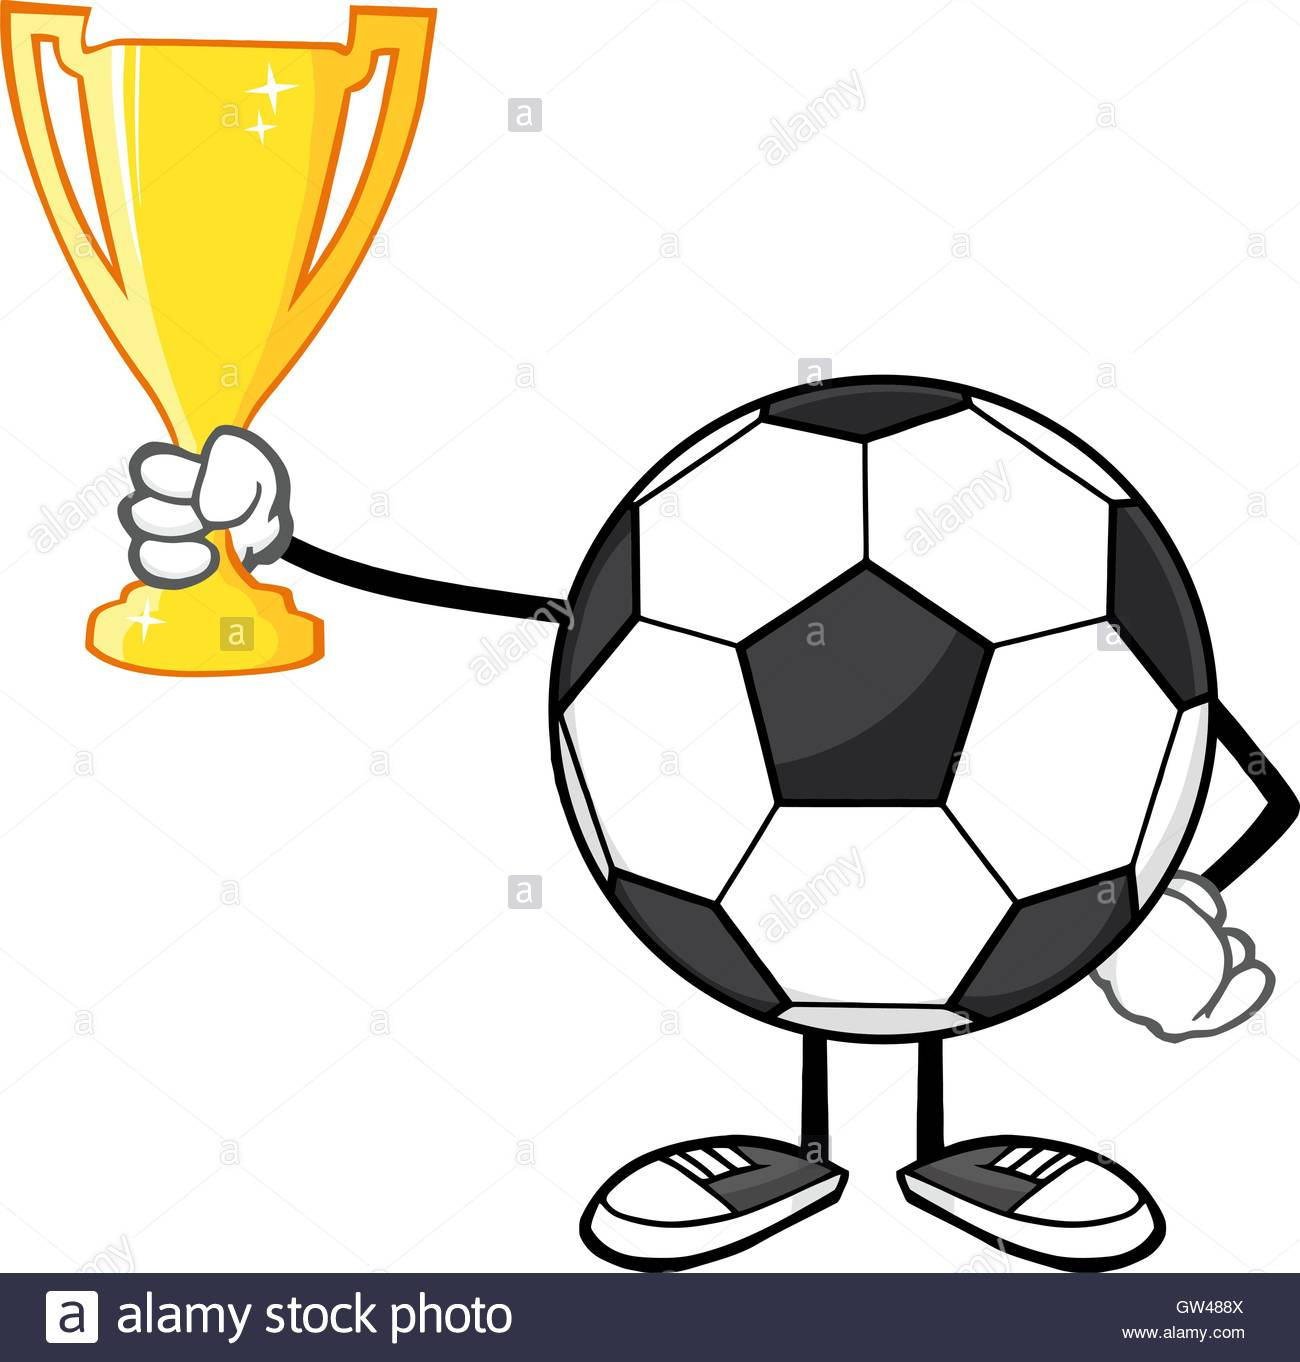 1300x1362 Soccer Ball Cartoon Character Holding A Golden Trophy Cup Stock